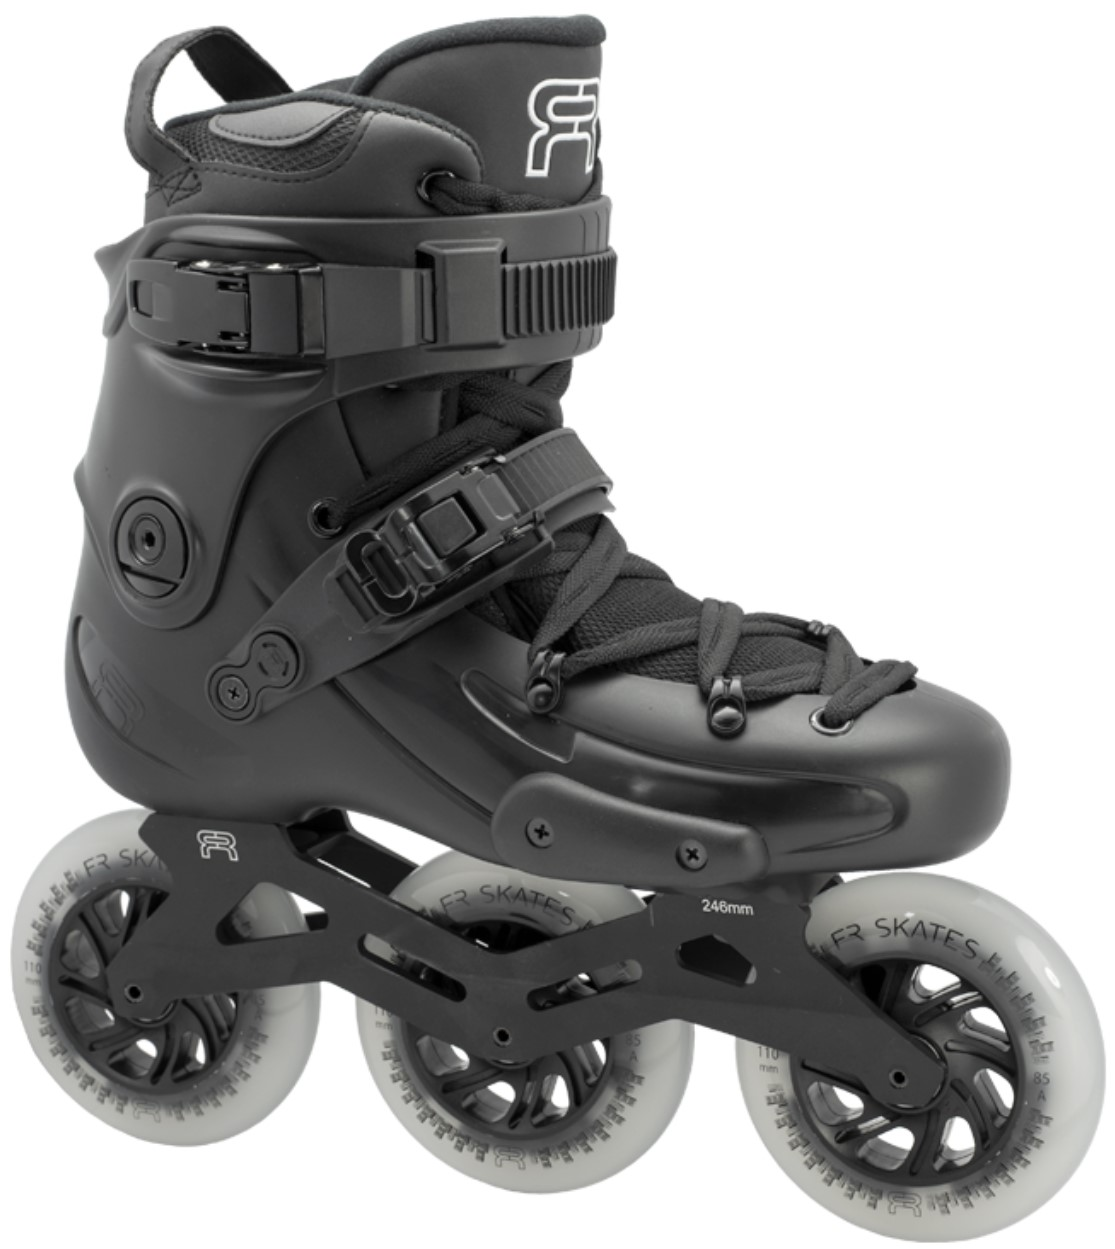 FR2 inline skate with 3 downtown 110 mm wheels